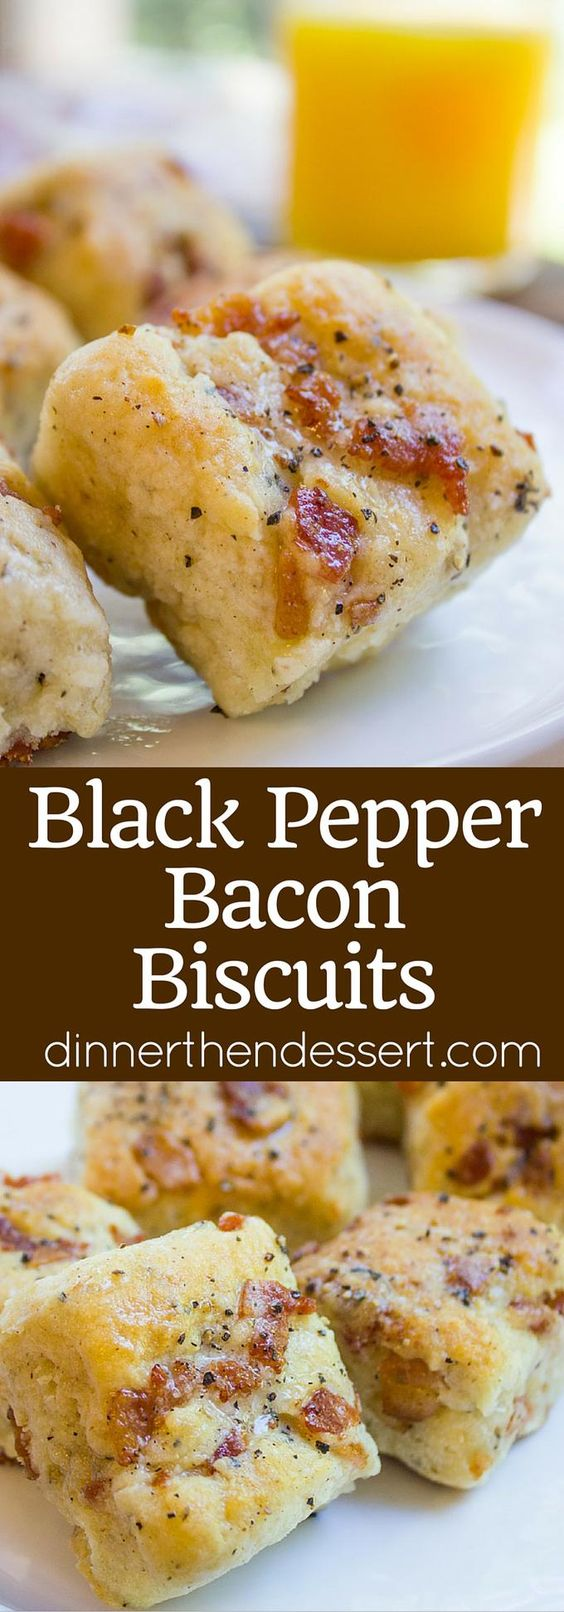 """Black Pepper Bacon Biscuits are peppery, full of delicious bacon, cream cheese and buttermilk, they are fluffy and flaky. The perfect biscuit for your weekend brunch!"" Recipe via Dinner then Dessert - The Best Homemade Biscuits Recipes - Quick, Easy and Delicious Bread Sides for Breakfast, Brunch, Lunch and Family Dinner! #biscuits #biscuitrecipes #homemdebiscuits #easybiscuits #rolls #homemadebreadsides #bread #breakfastrecipes #comfortfood"